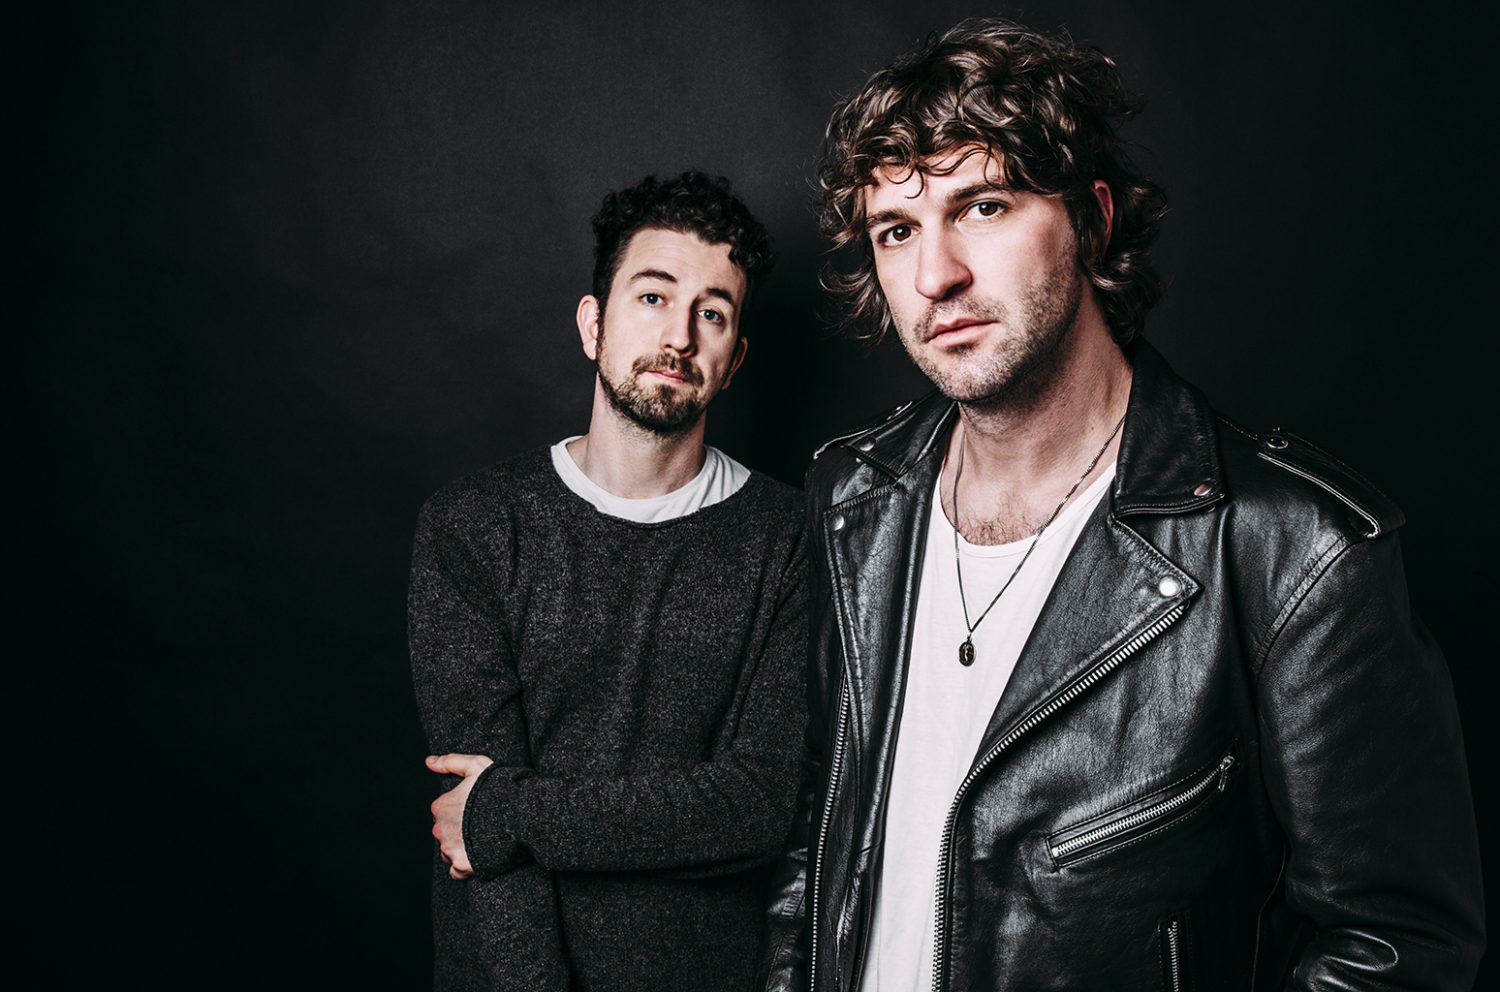 Japandroids Cover Talking Heads and the Saints with The Hold Steady's Craig Finn